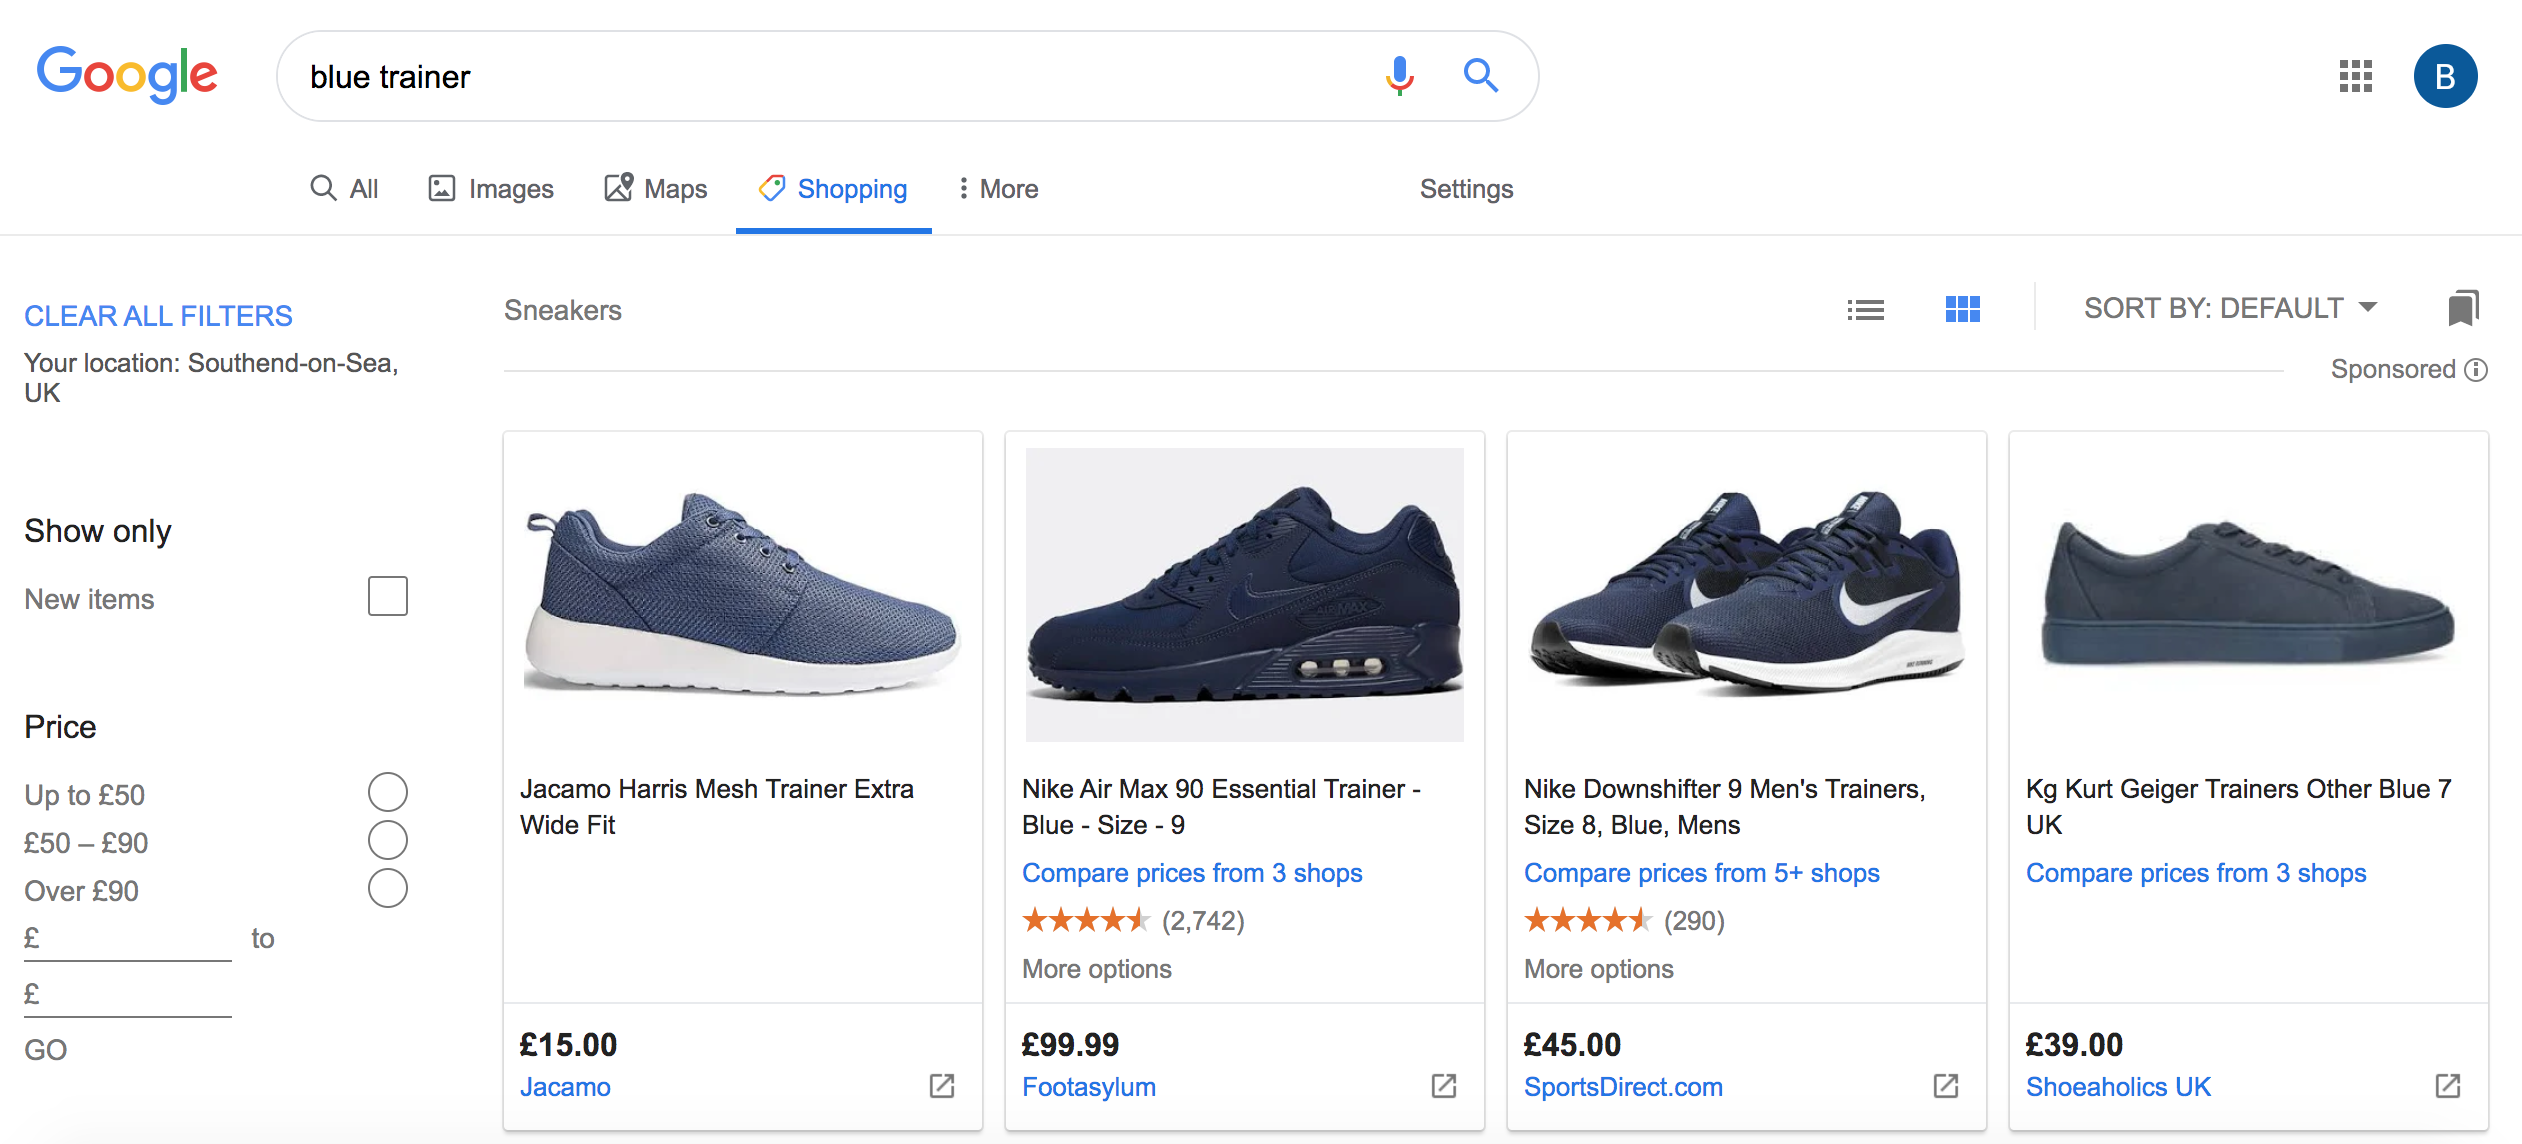 example of a google shopping ad